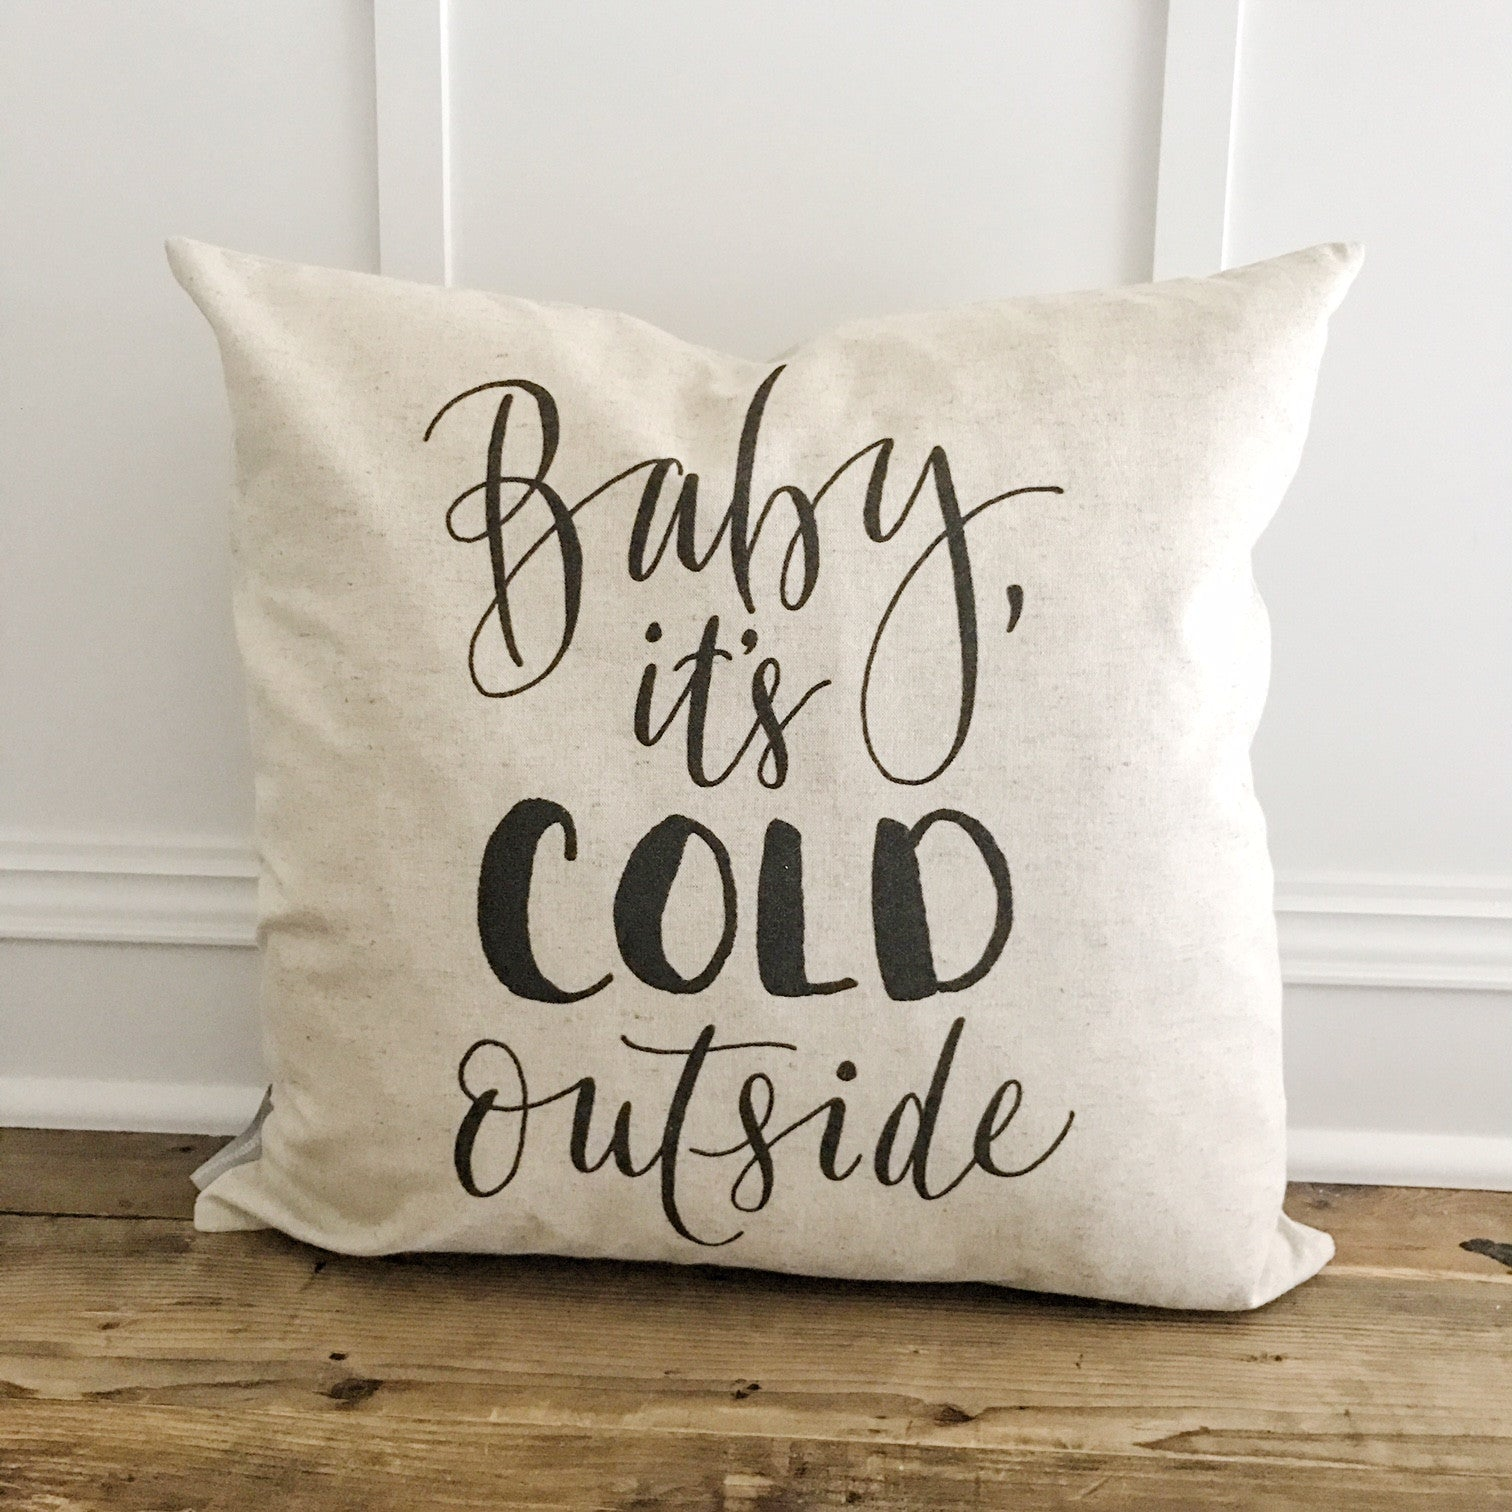 Baby it's Cold Outside Pillow Cover (Design 2) - Linen and Ivory